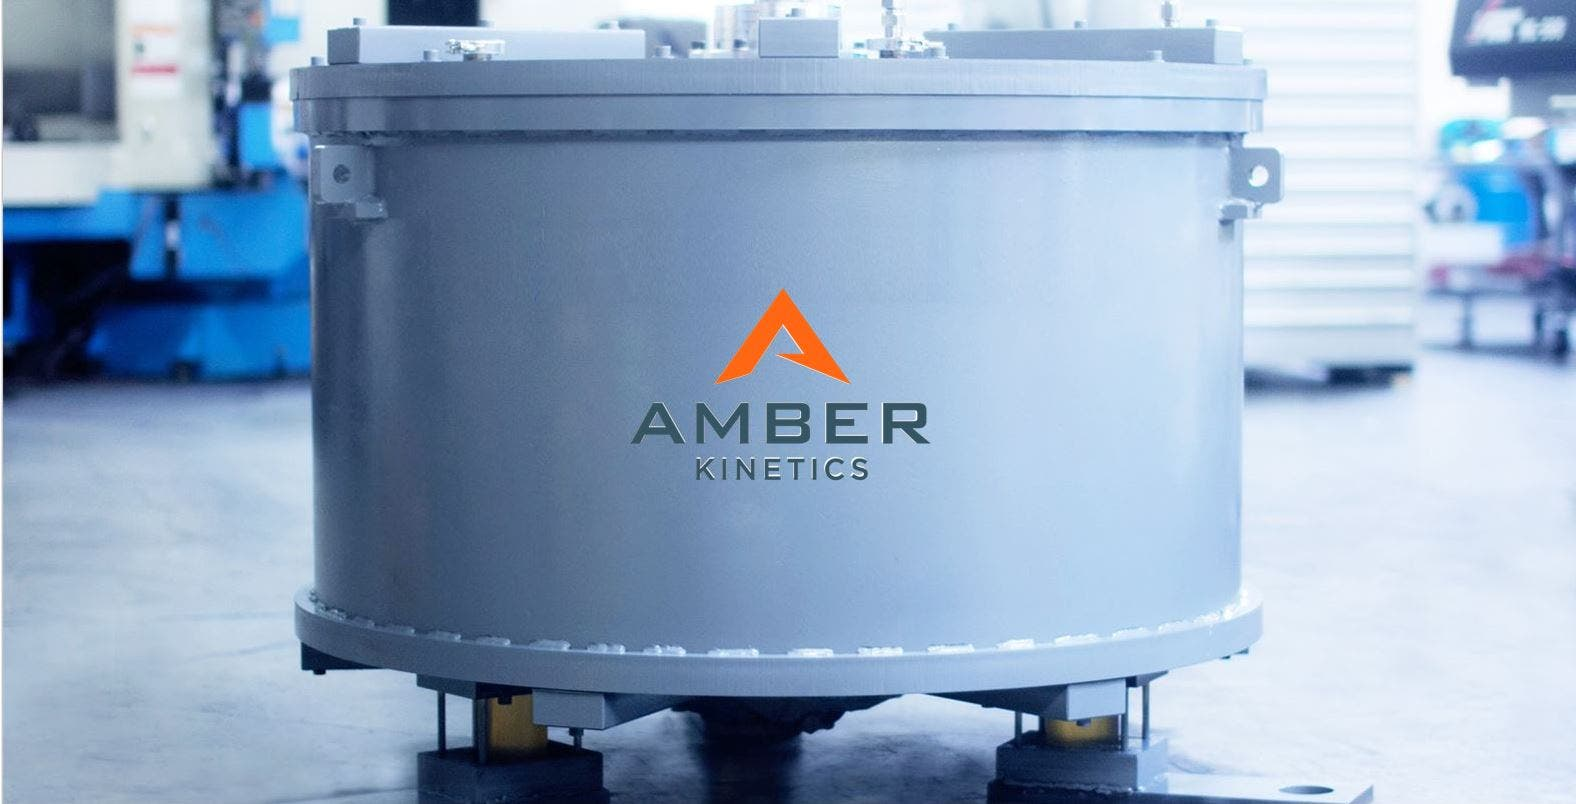 Amber Kinetics Heco Install Amp Test Flywheel Technology